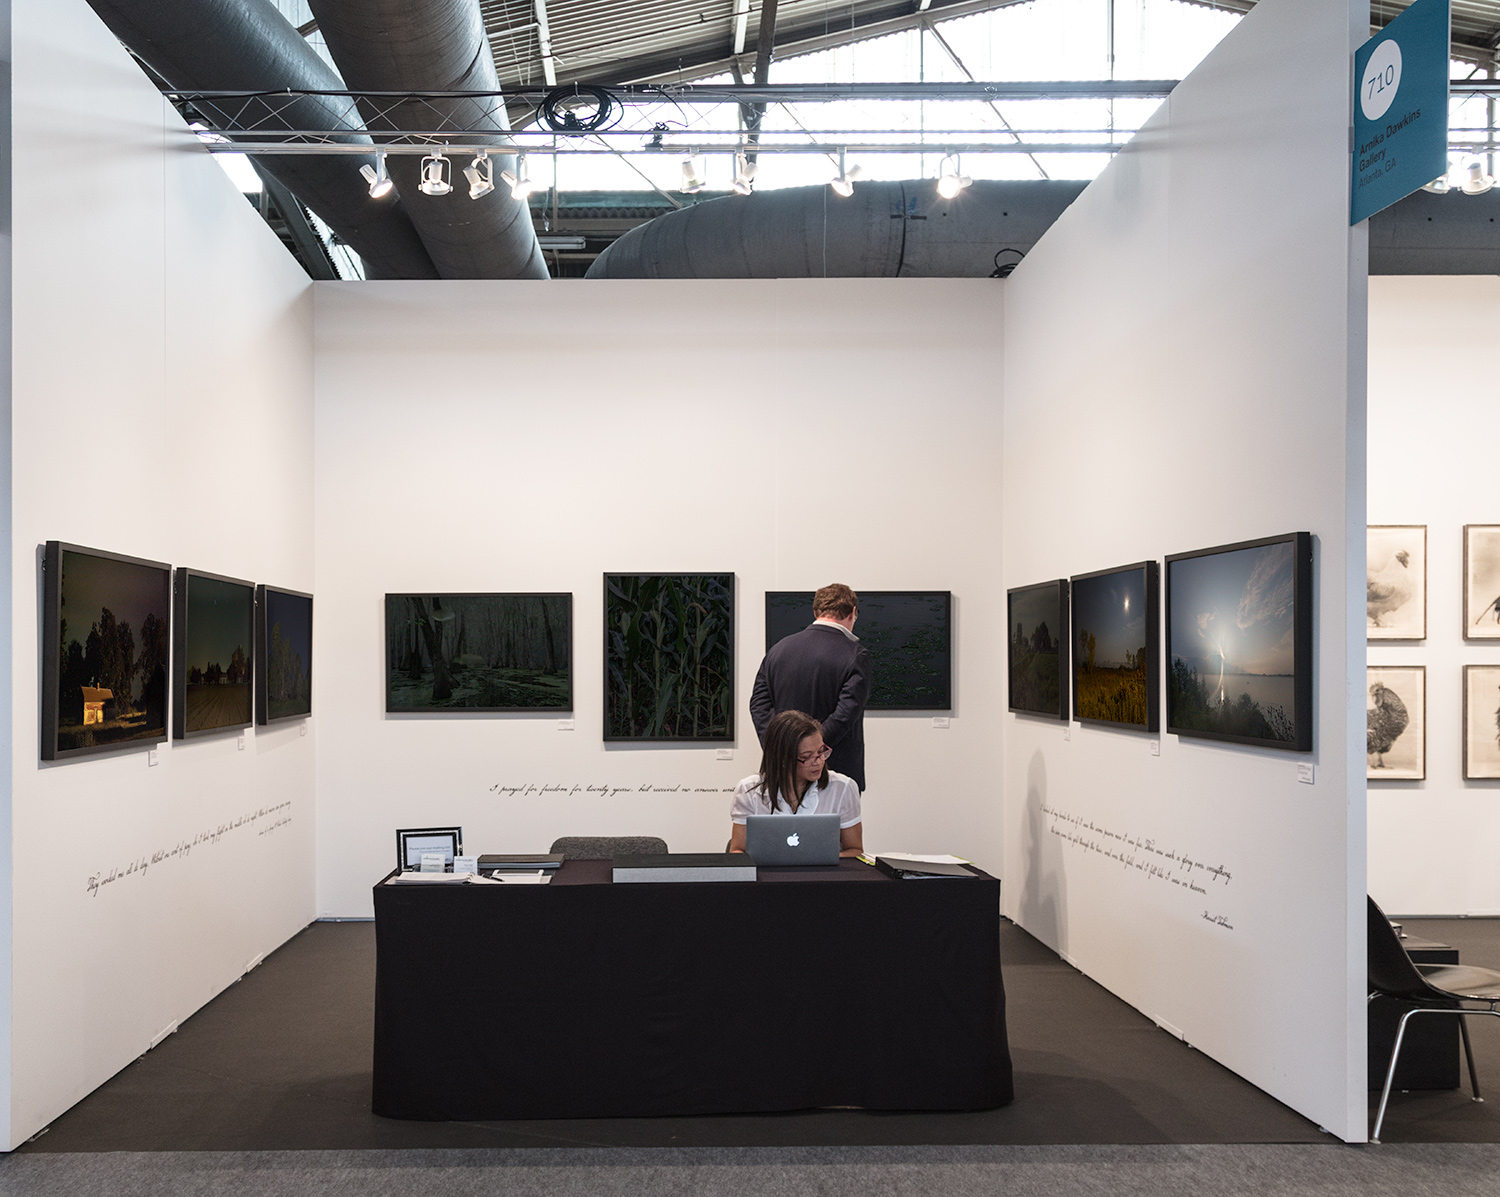 Arnika Dawkins Gallery   brought  Through Darkness to Light  to The 2018 Photography Show by AIPAD.